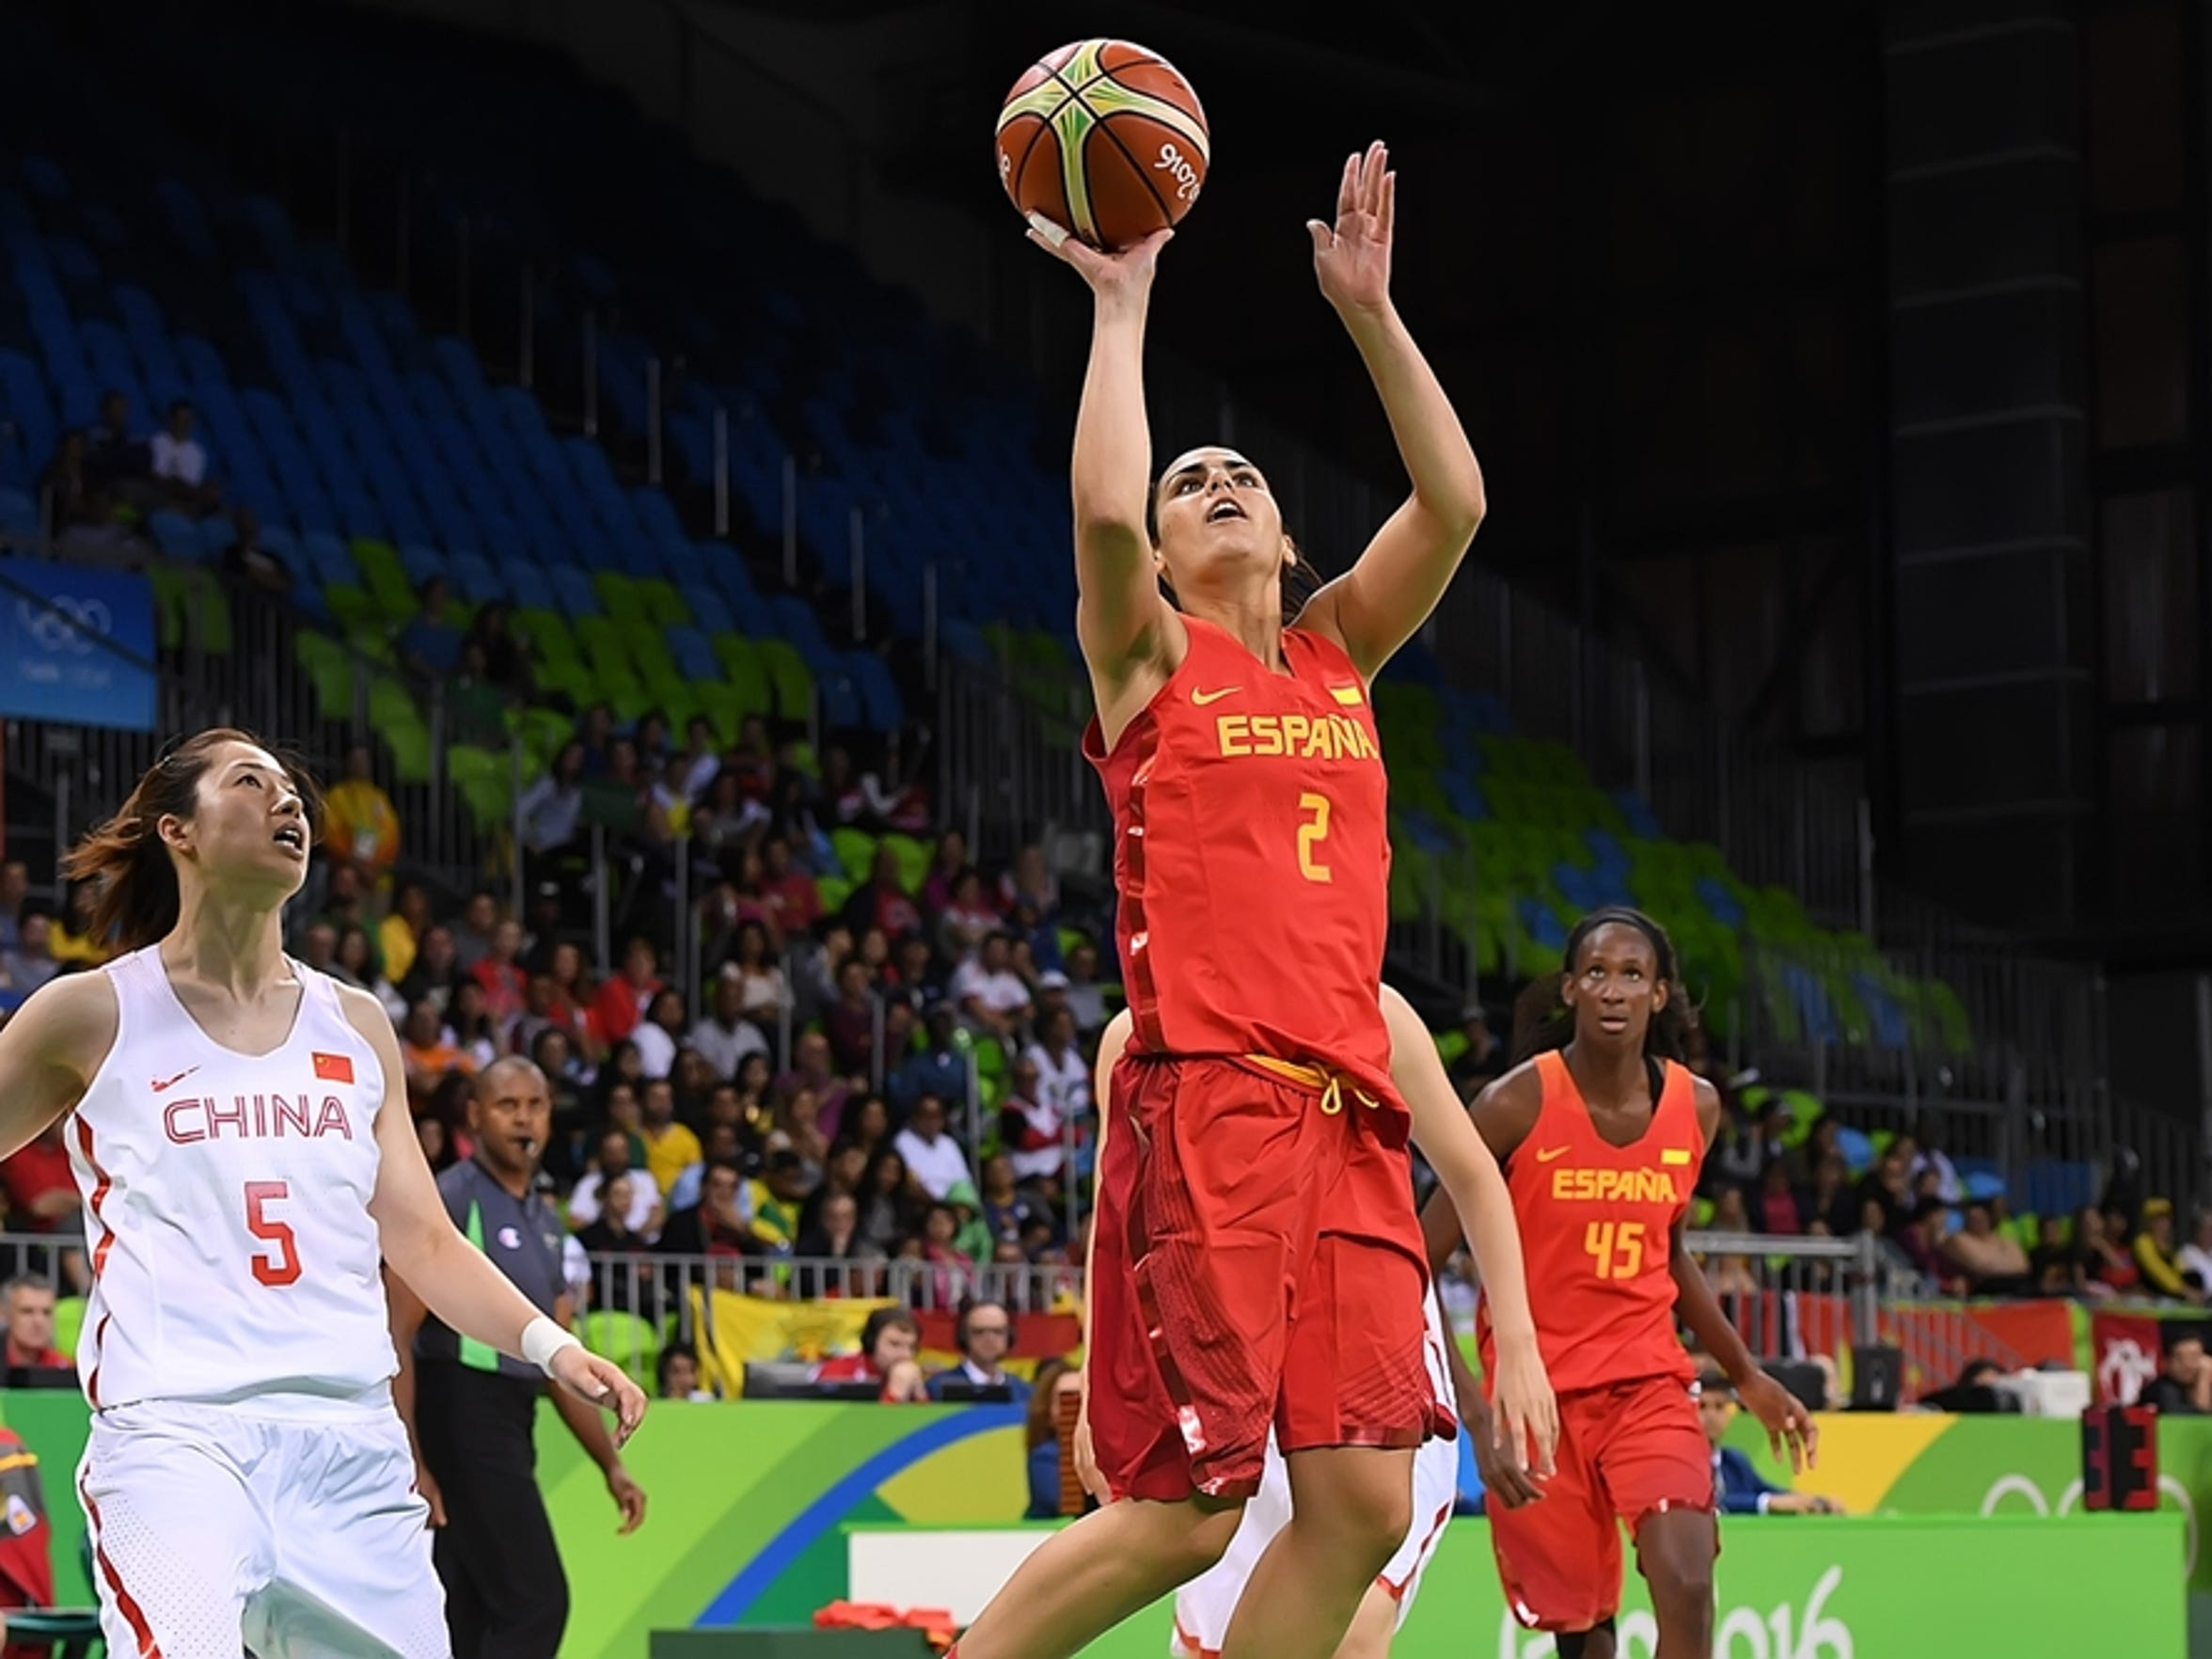 Romero scores two of her 16 points against China at the Rio Olympics.